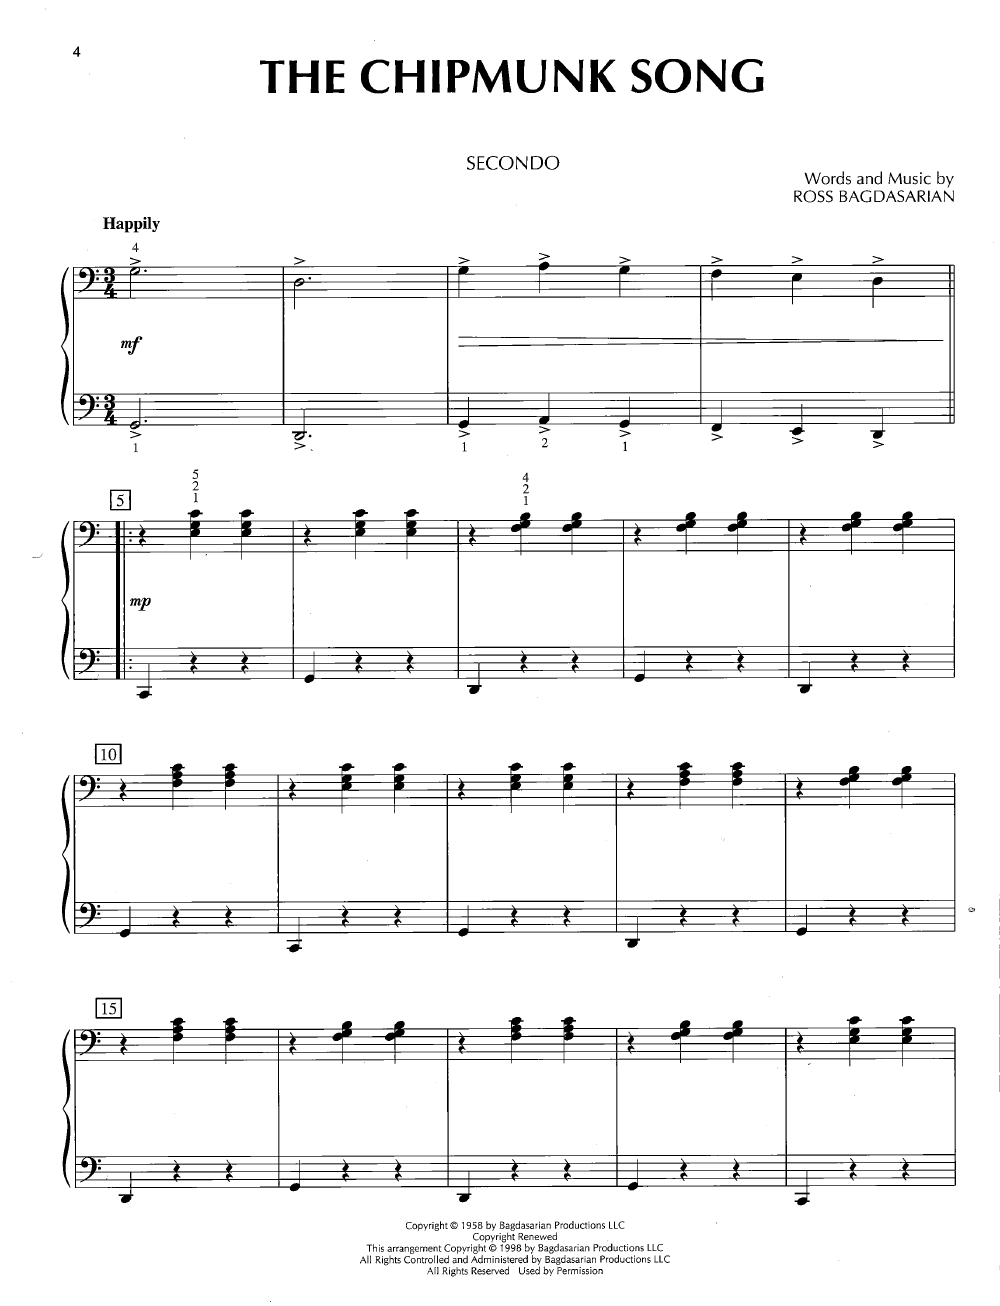 Christmas Piano Duets (1 Piano 4 Hands ) by | J.W. Pepper Sheet Music